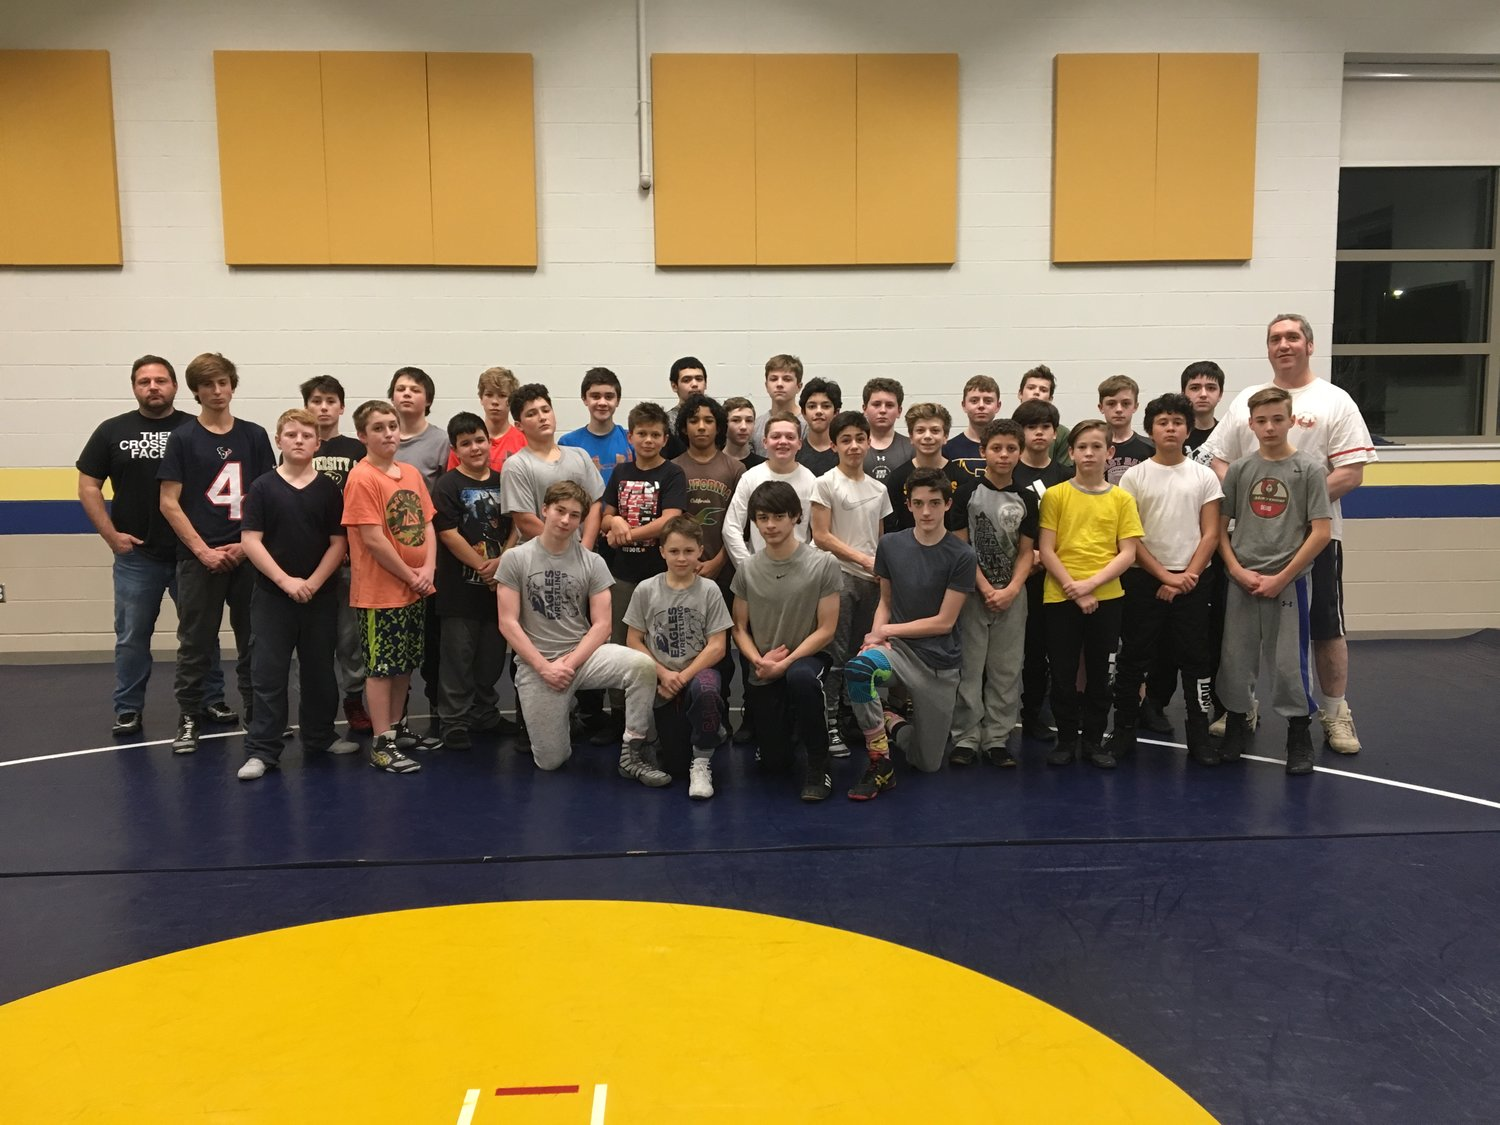 The Barrington Middle School wrestling team has enjoyed a very successful regular season and hopes to bring home medals at postseason tournaments.